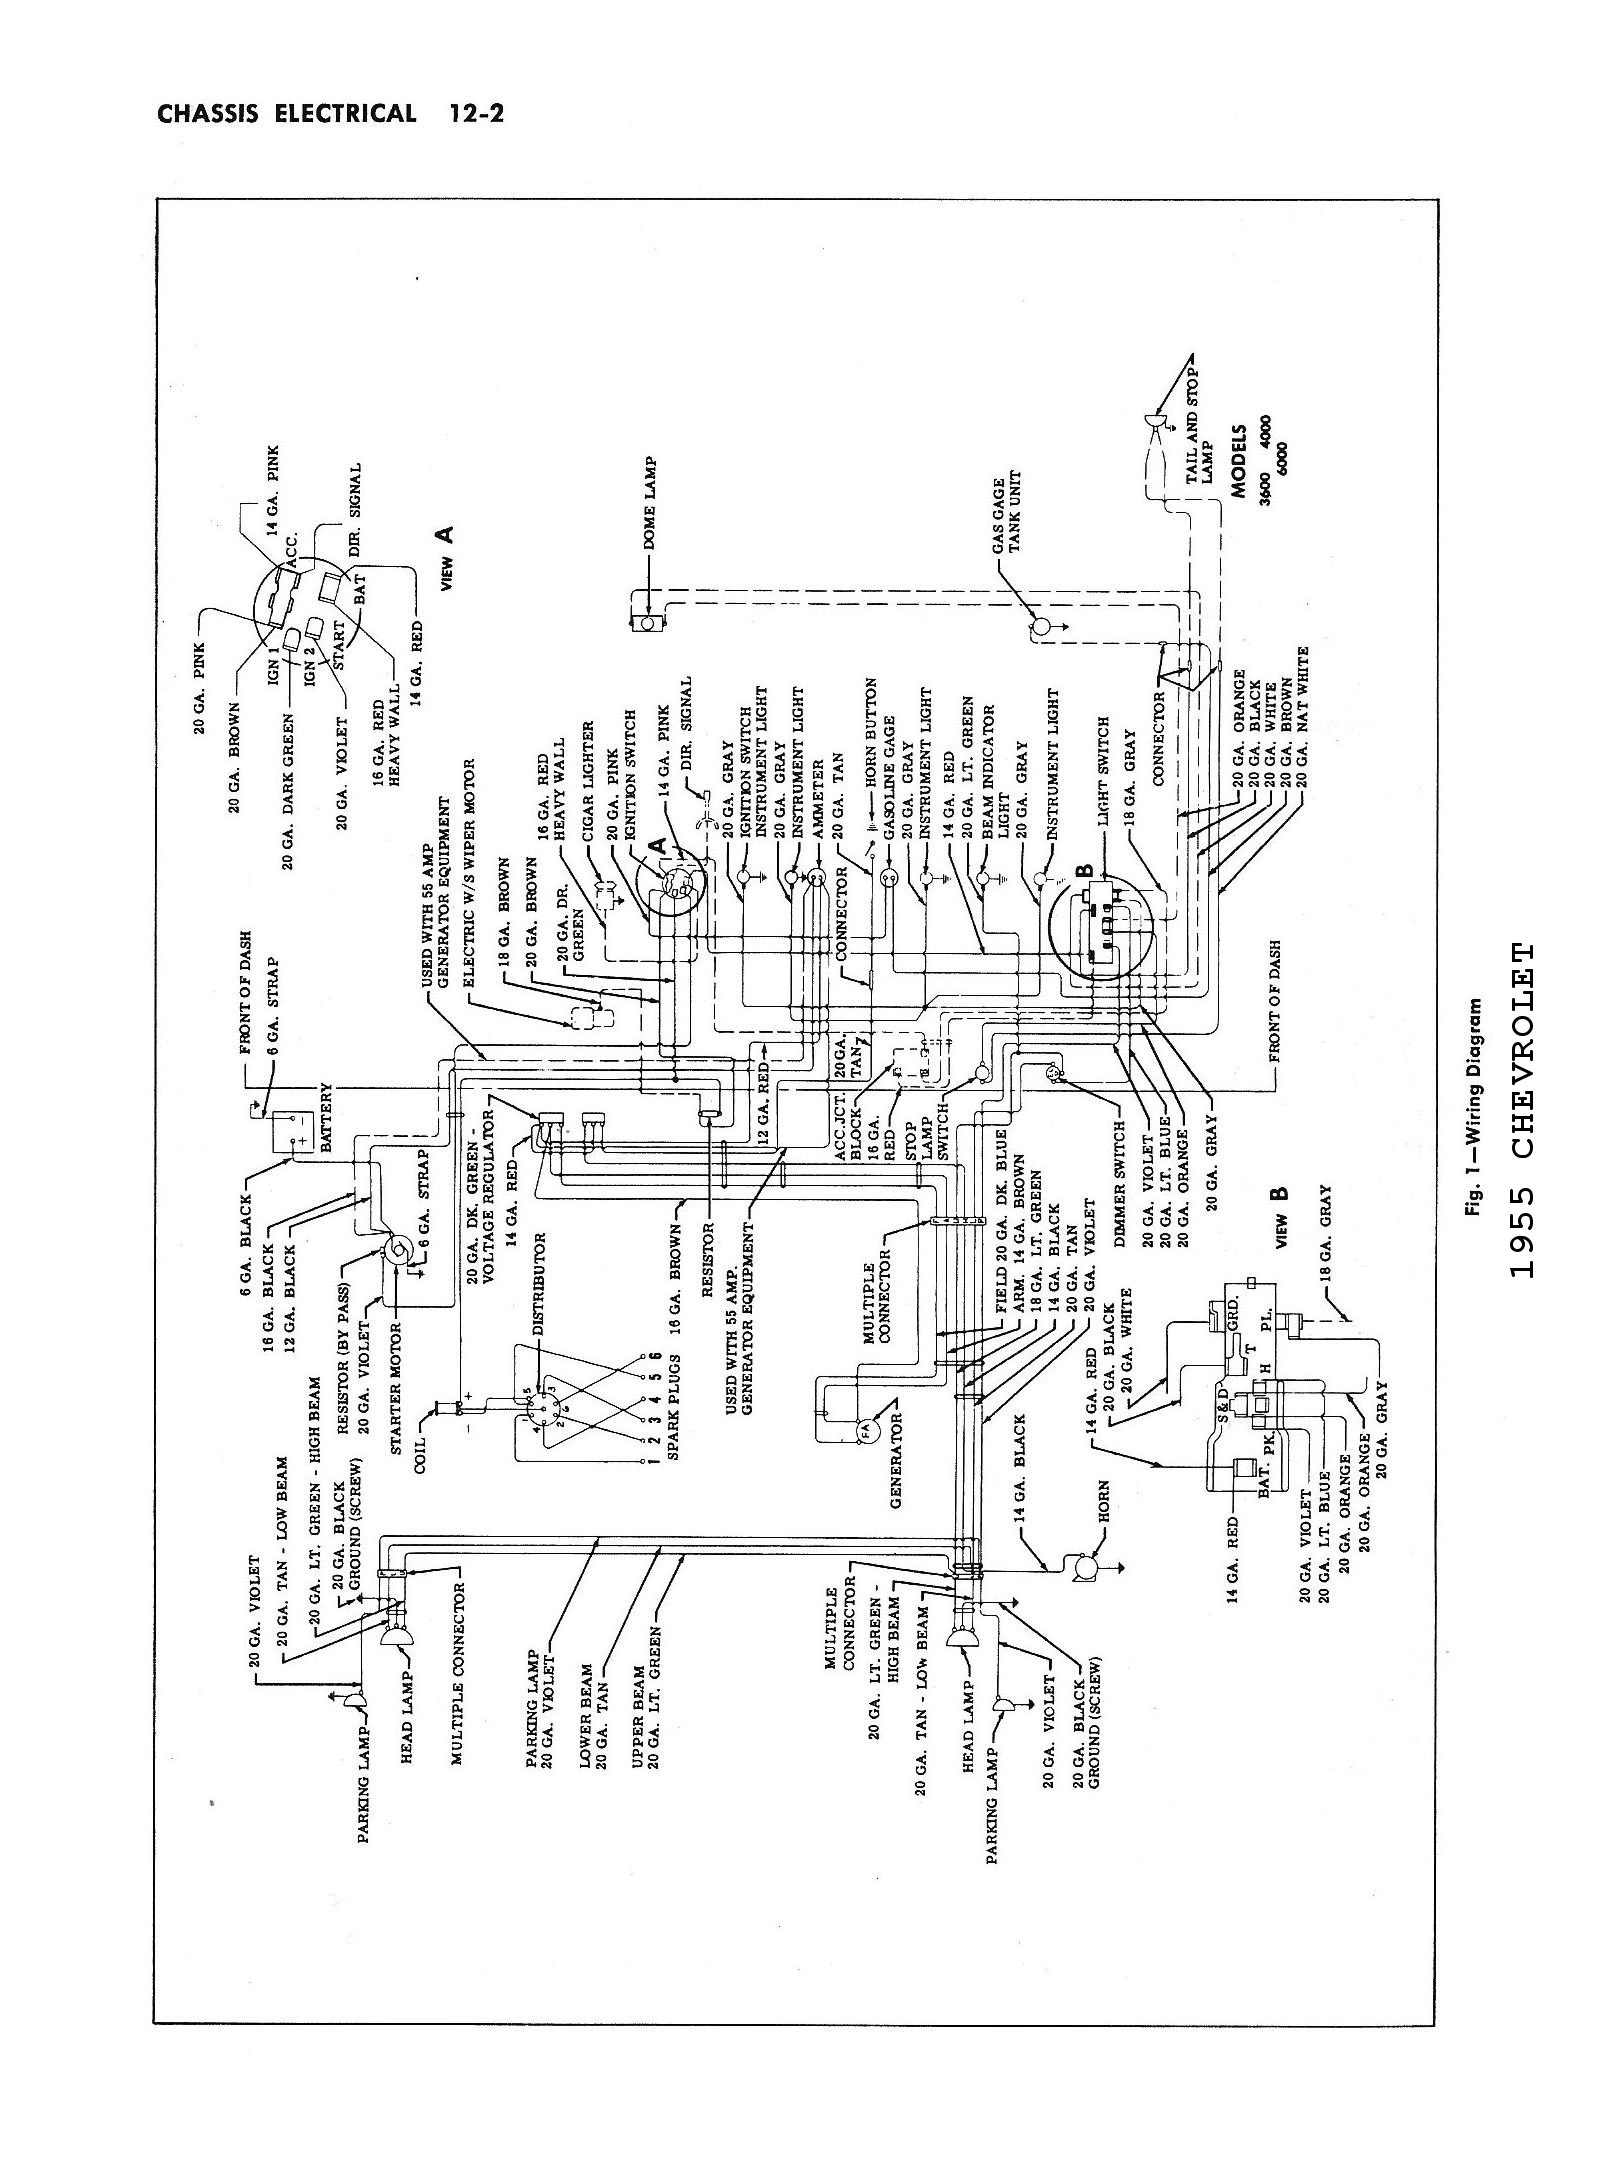 55ctsm1202 chevy wiring diagrams chevy truck wiring harness diagram at mr168.co